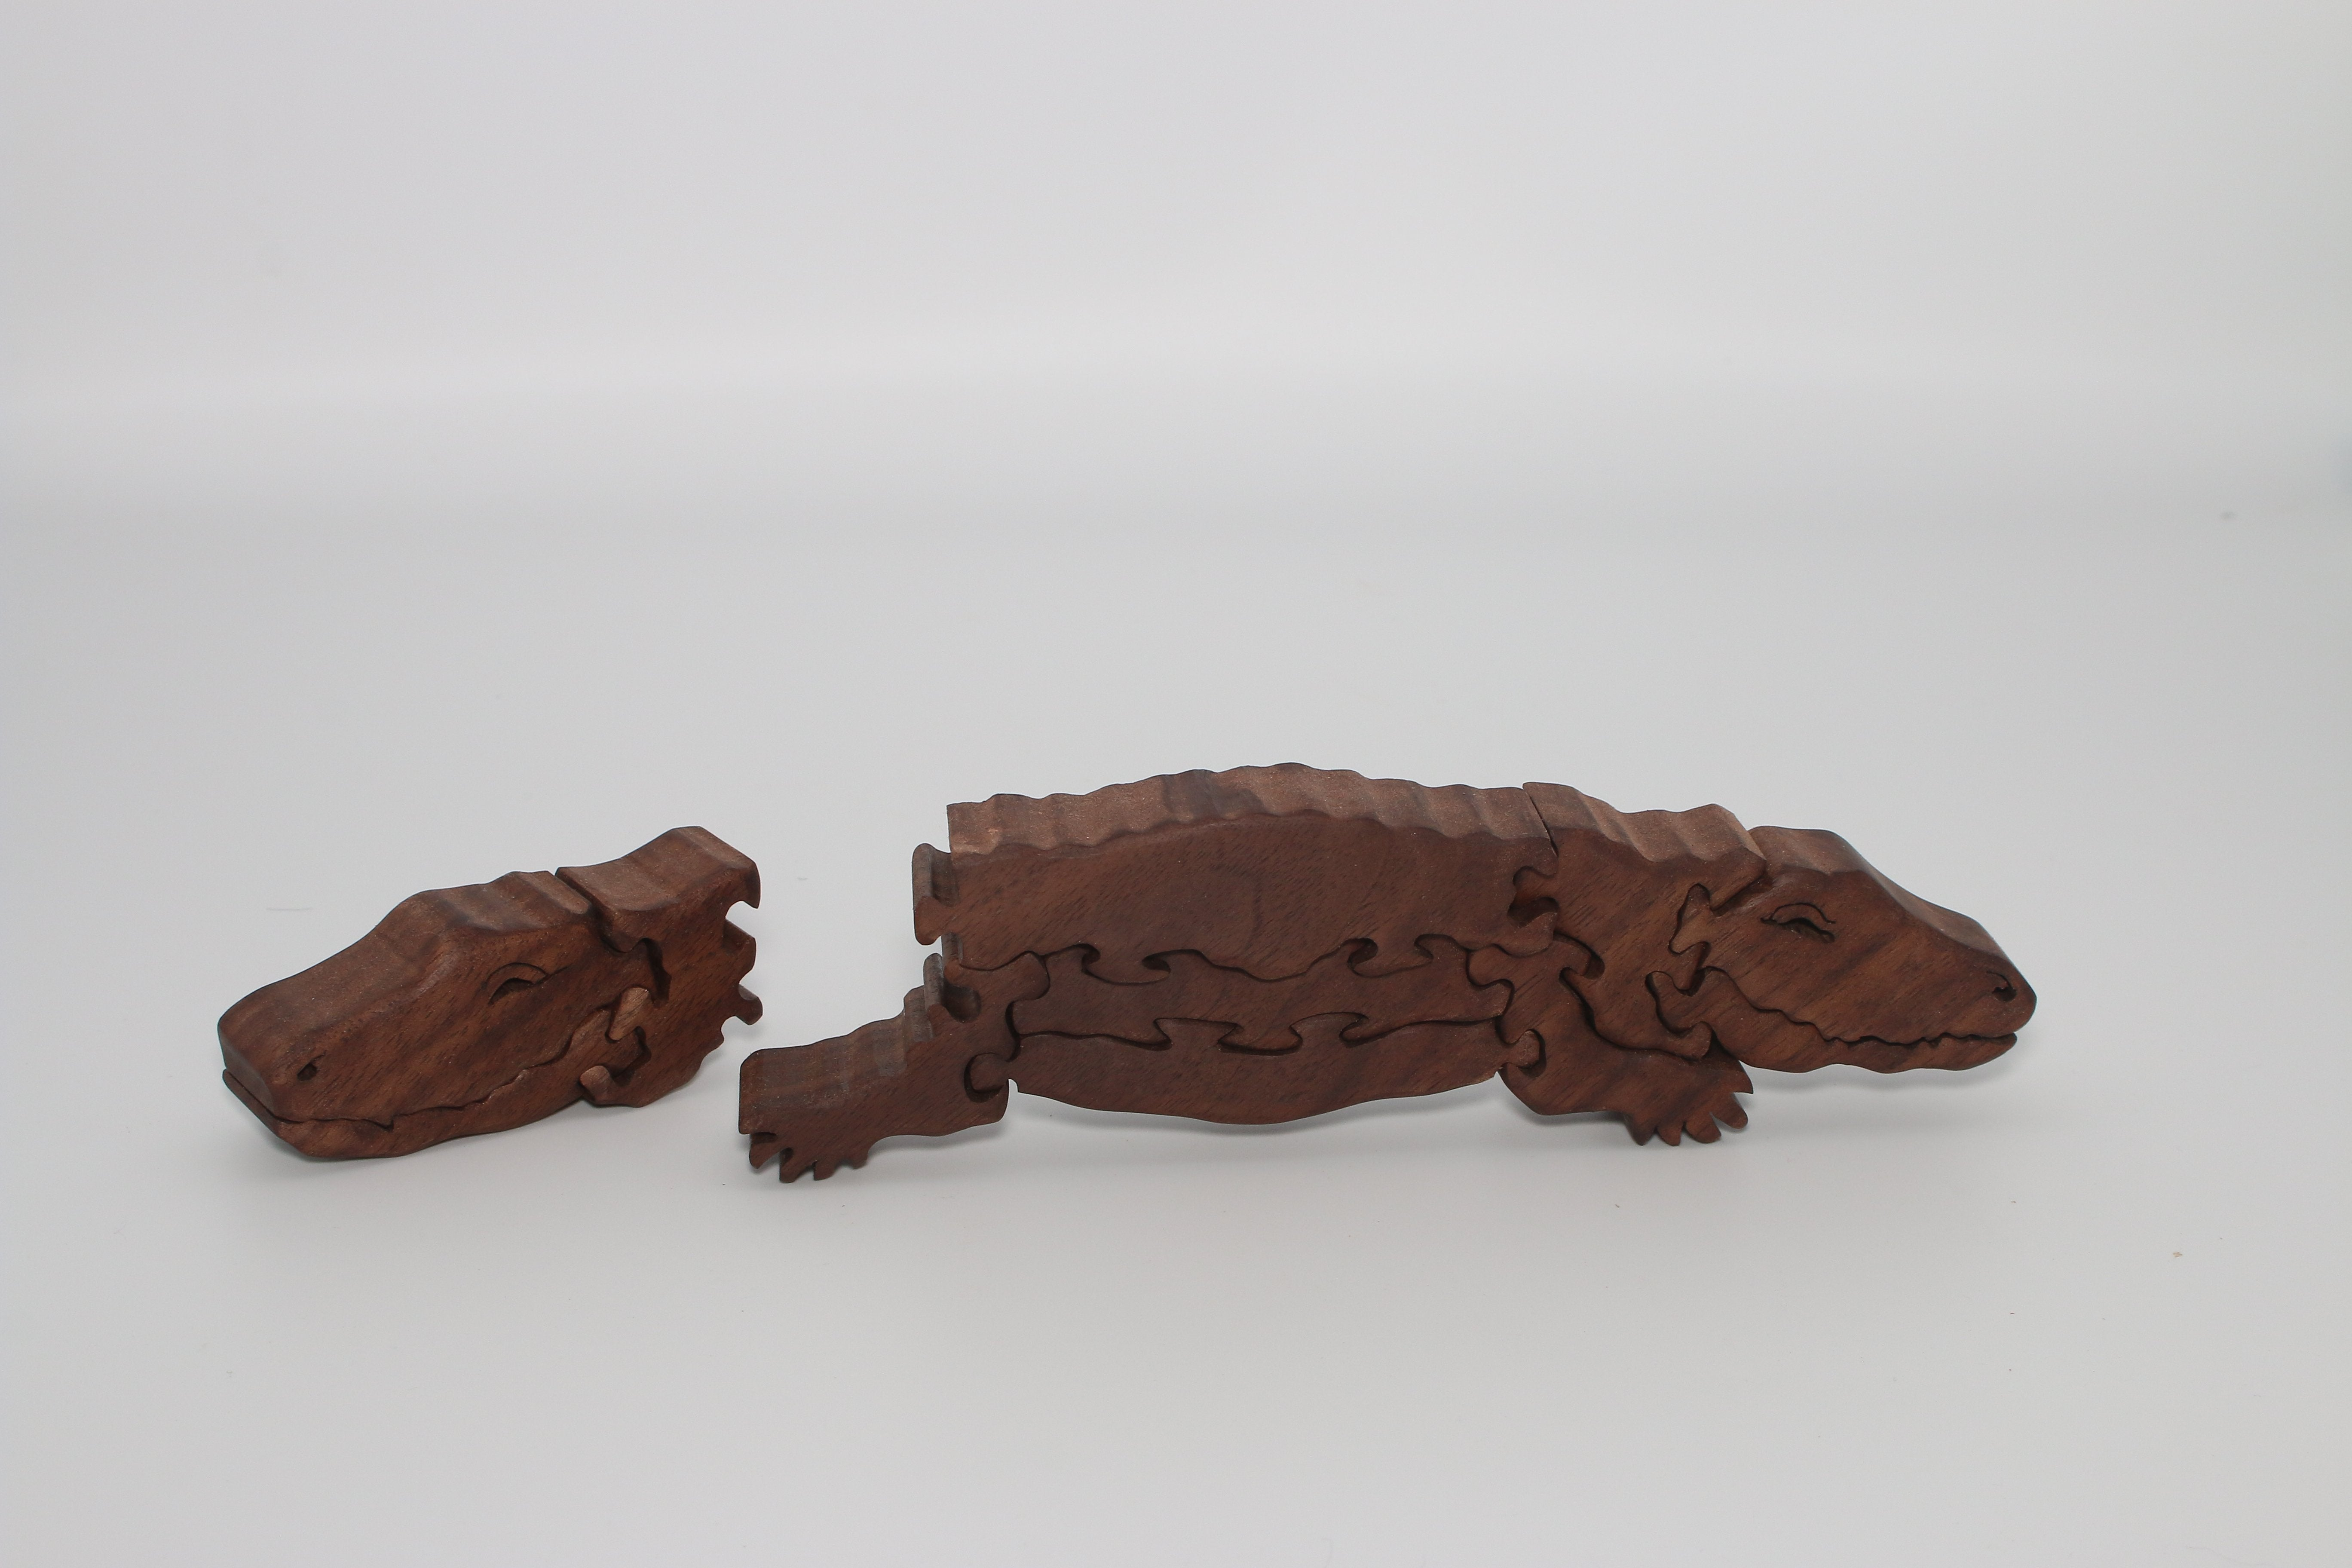 Two-headed Alligator